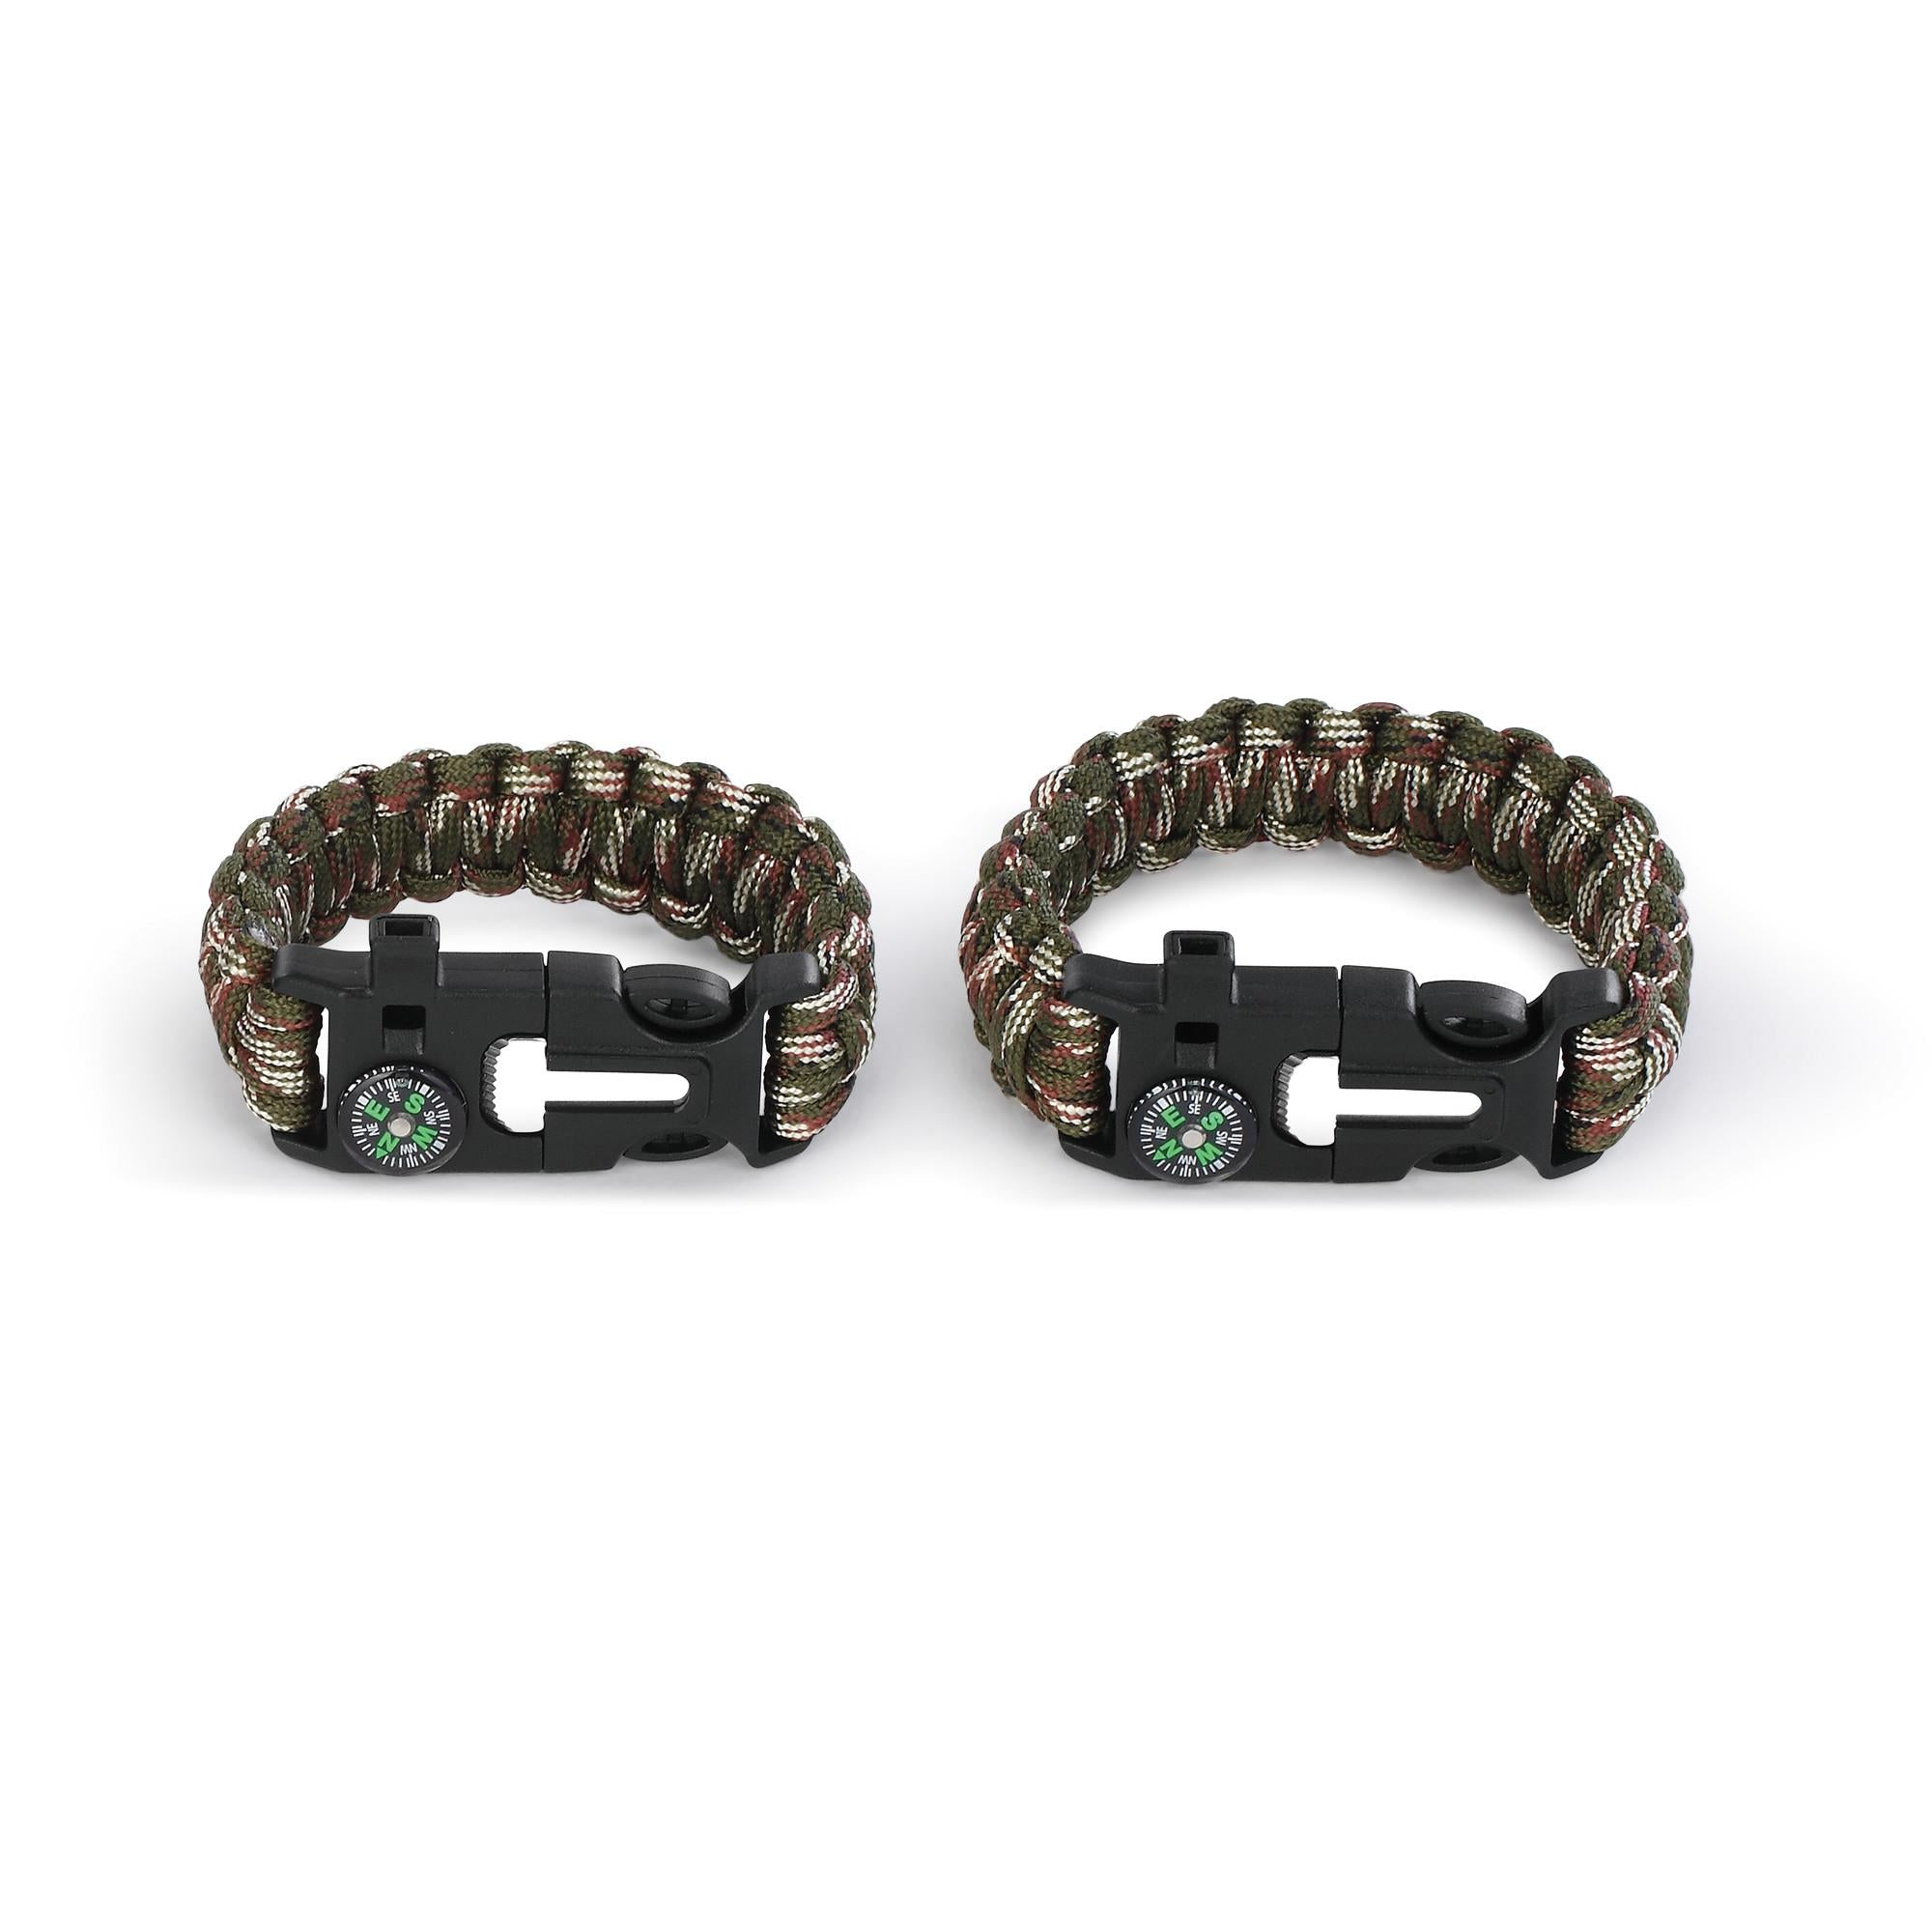 Me & Dad- Outdoor Camo Wrist Gear